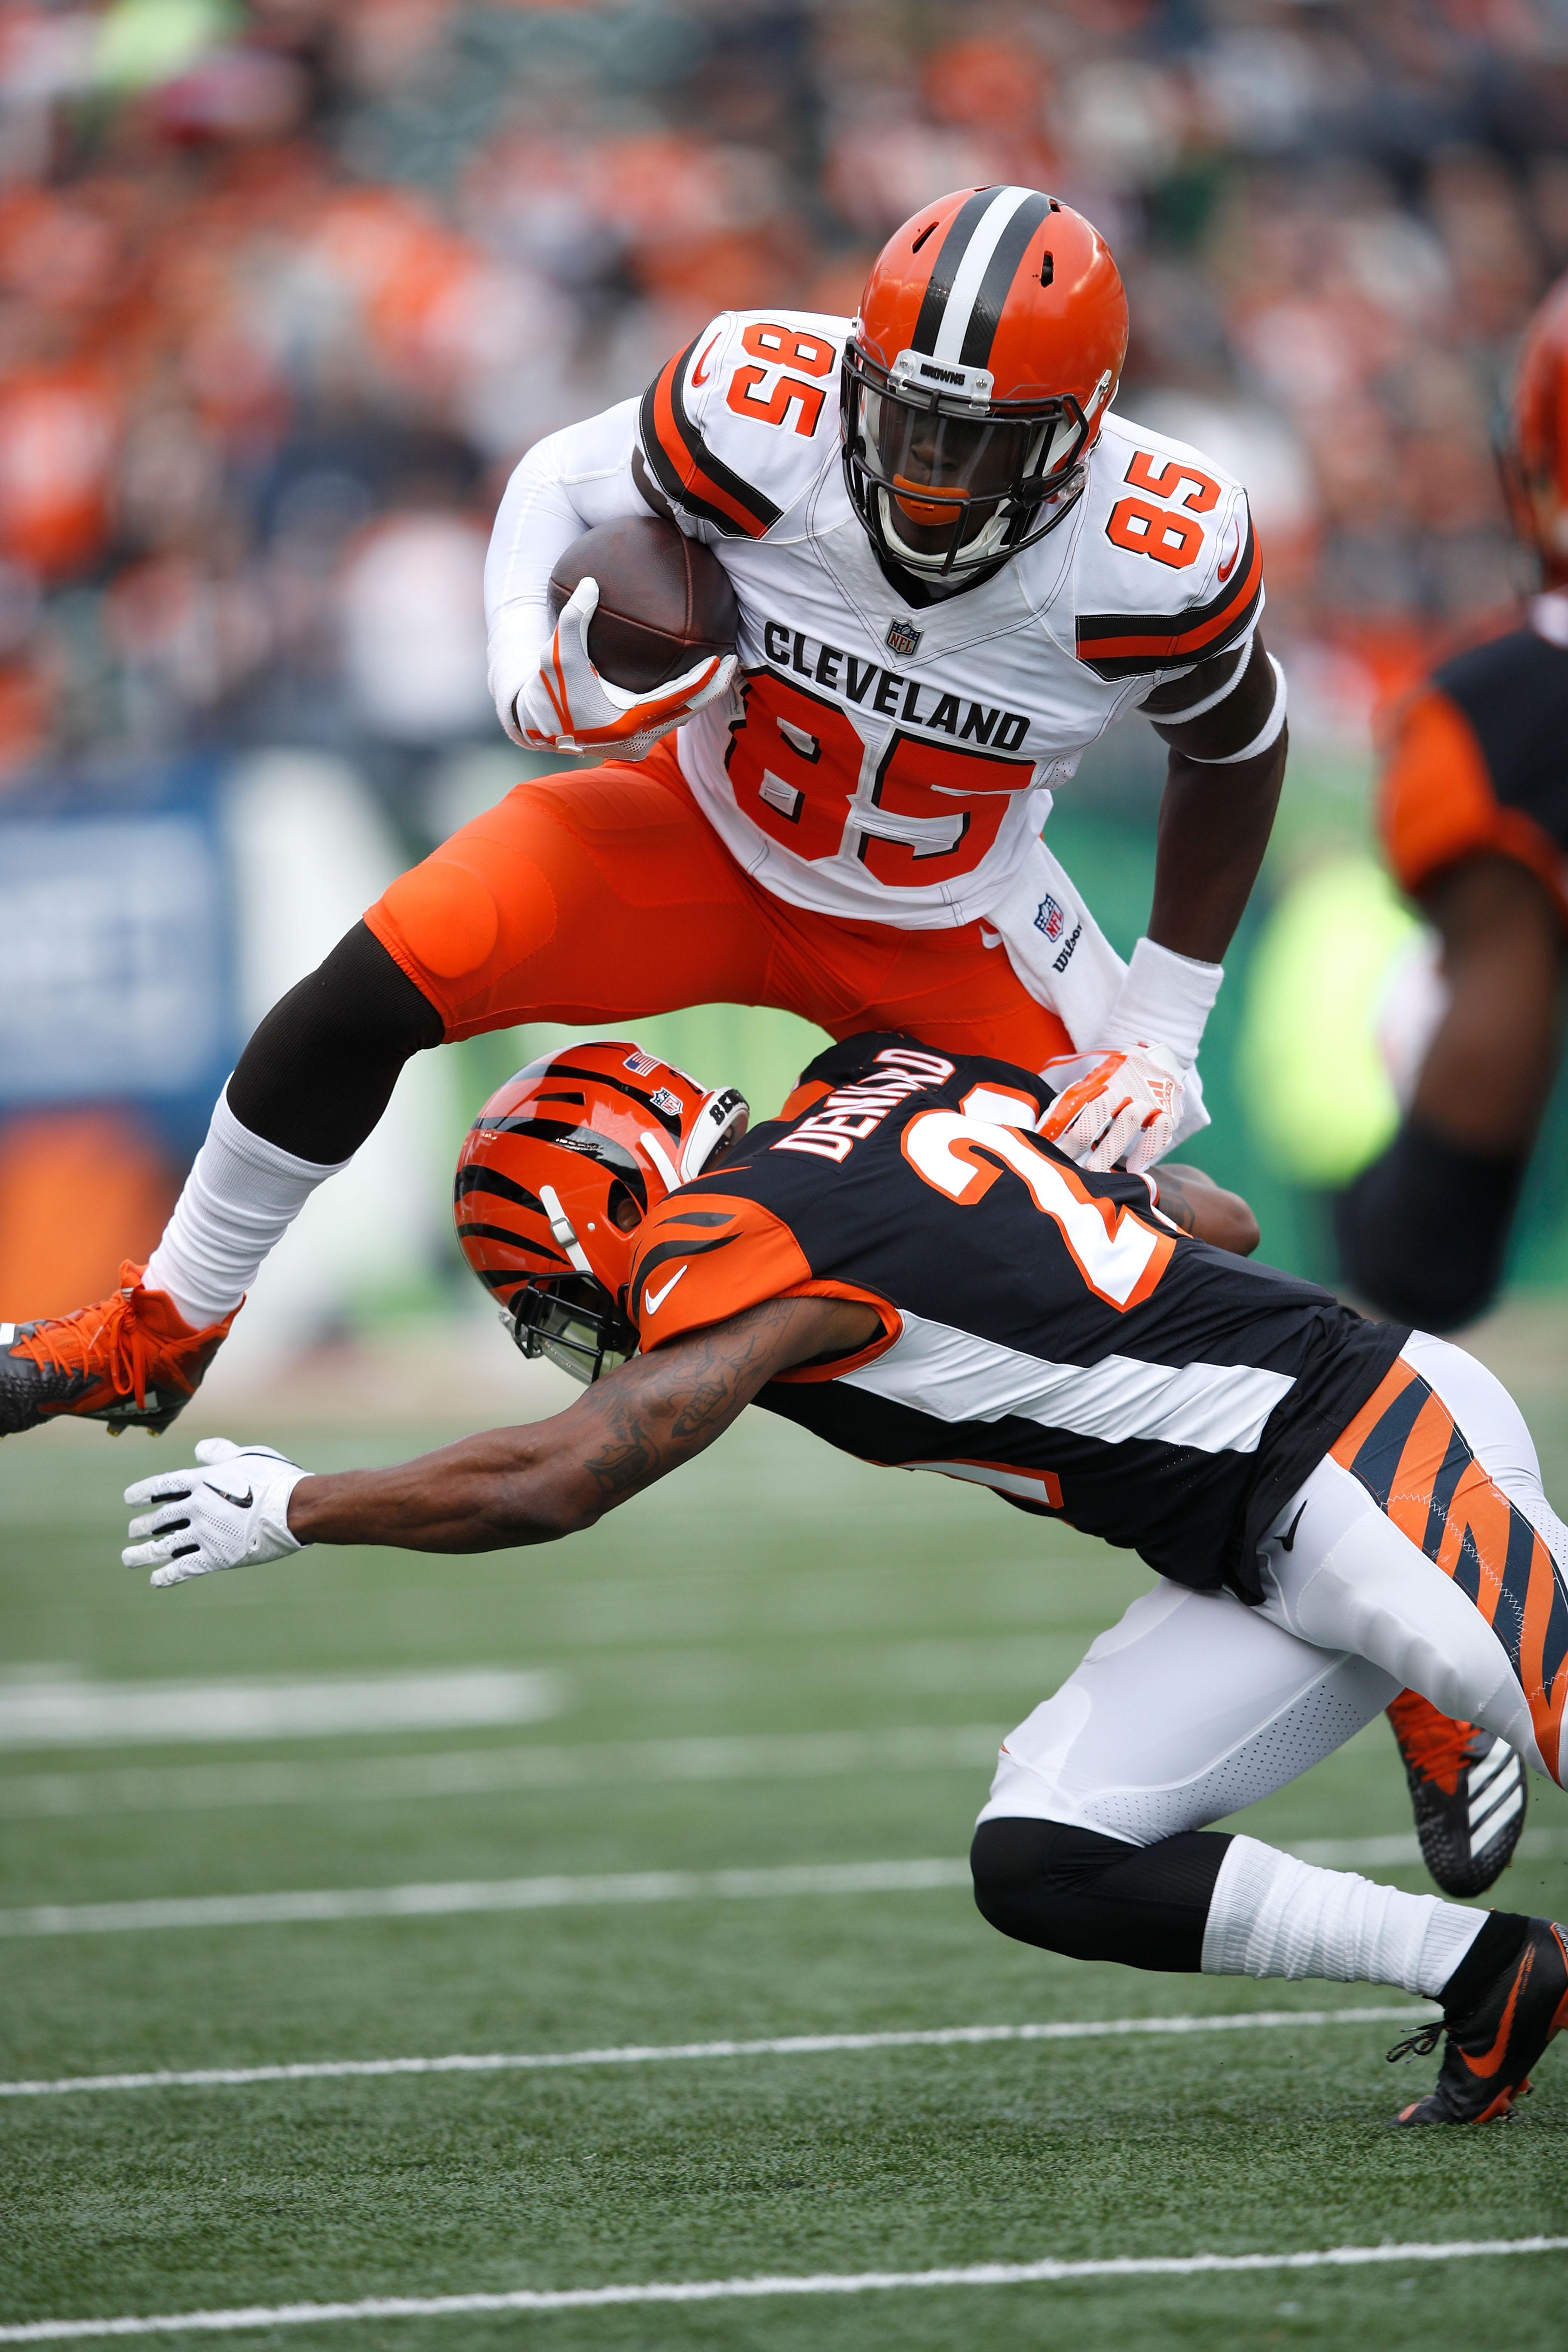 CINCINNATI, OH - NOVEMBER 25:  David Njoku #85 of the Cleveland Browns attempts to hurdle Darqueze Dennard #21 of the Cincinnati Bengals during the first quarter at Paul Brown Stadium on November 25, 2018 in Cincinnati, Ohio. (Photo by Joe Robbins/Getty Images)